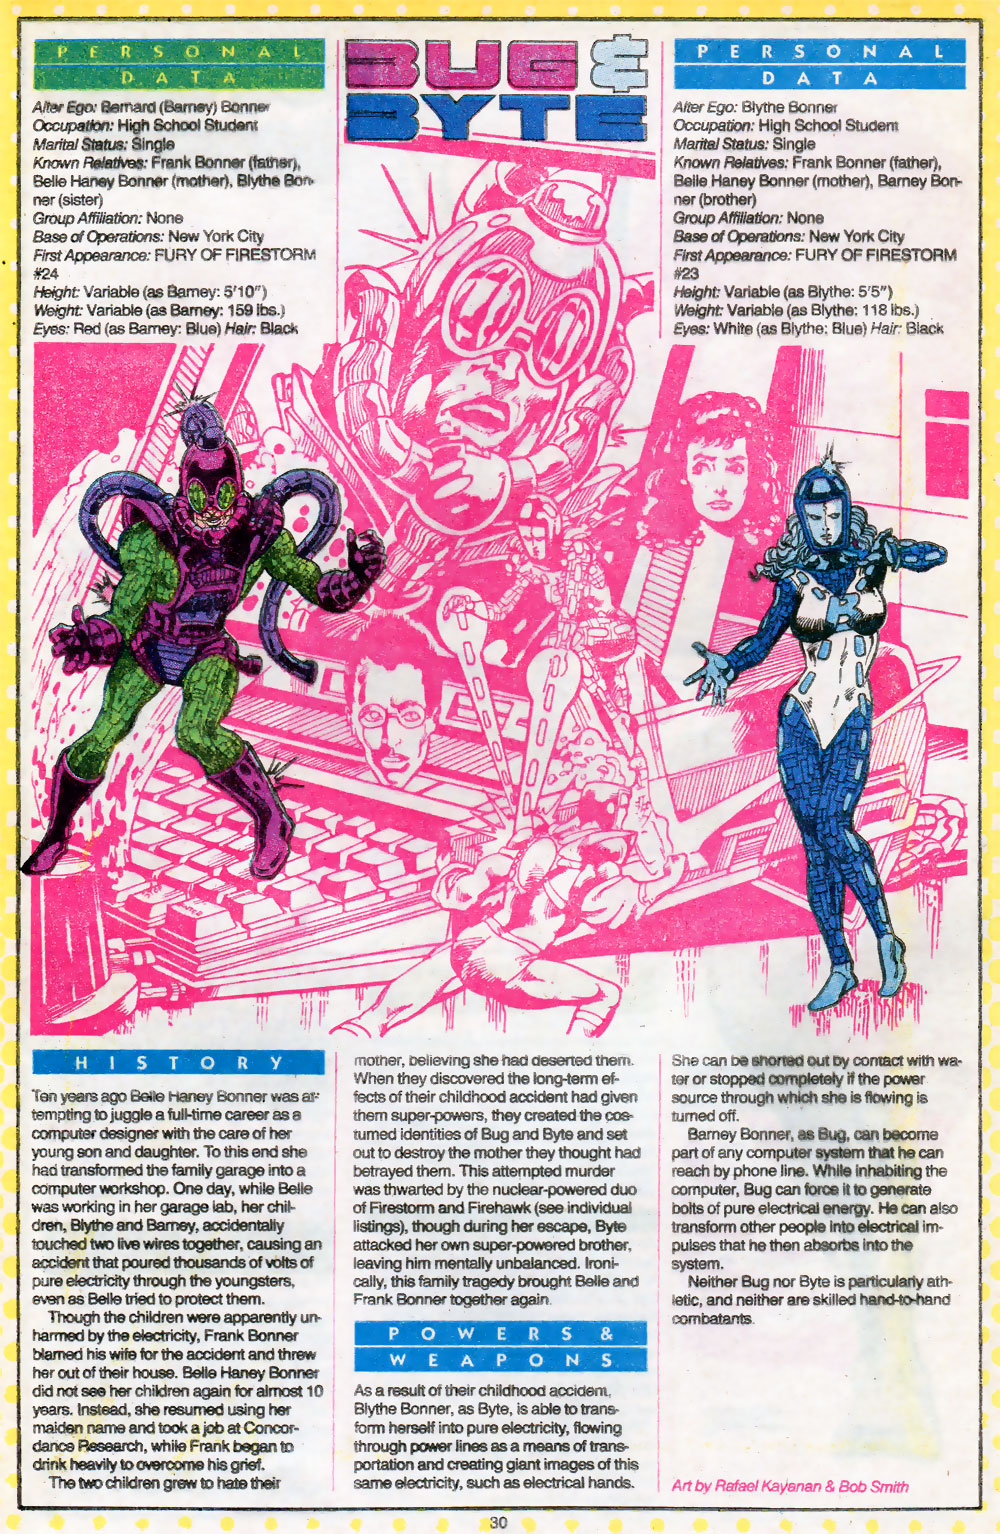 Bug & Byte by Rafael Kayanan from Who's Who: The Definitive Directory of the DC Universe